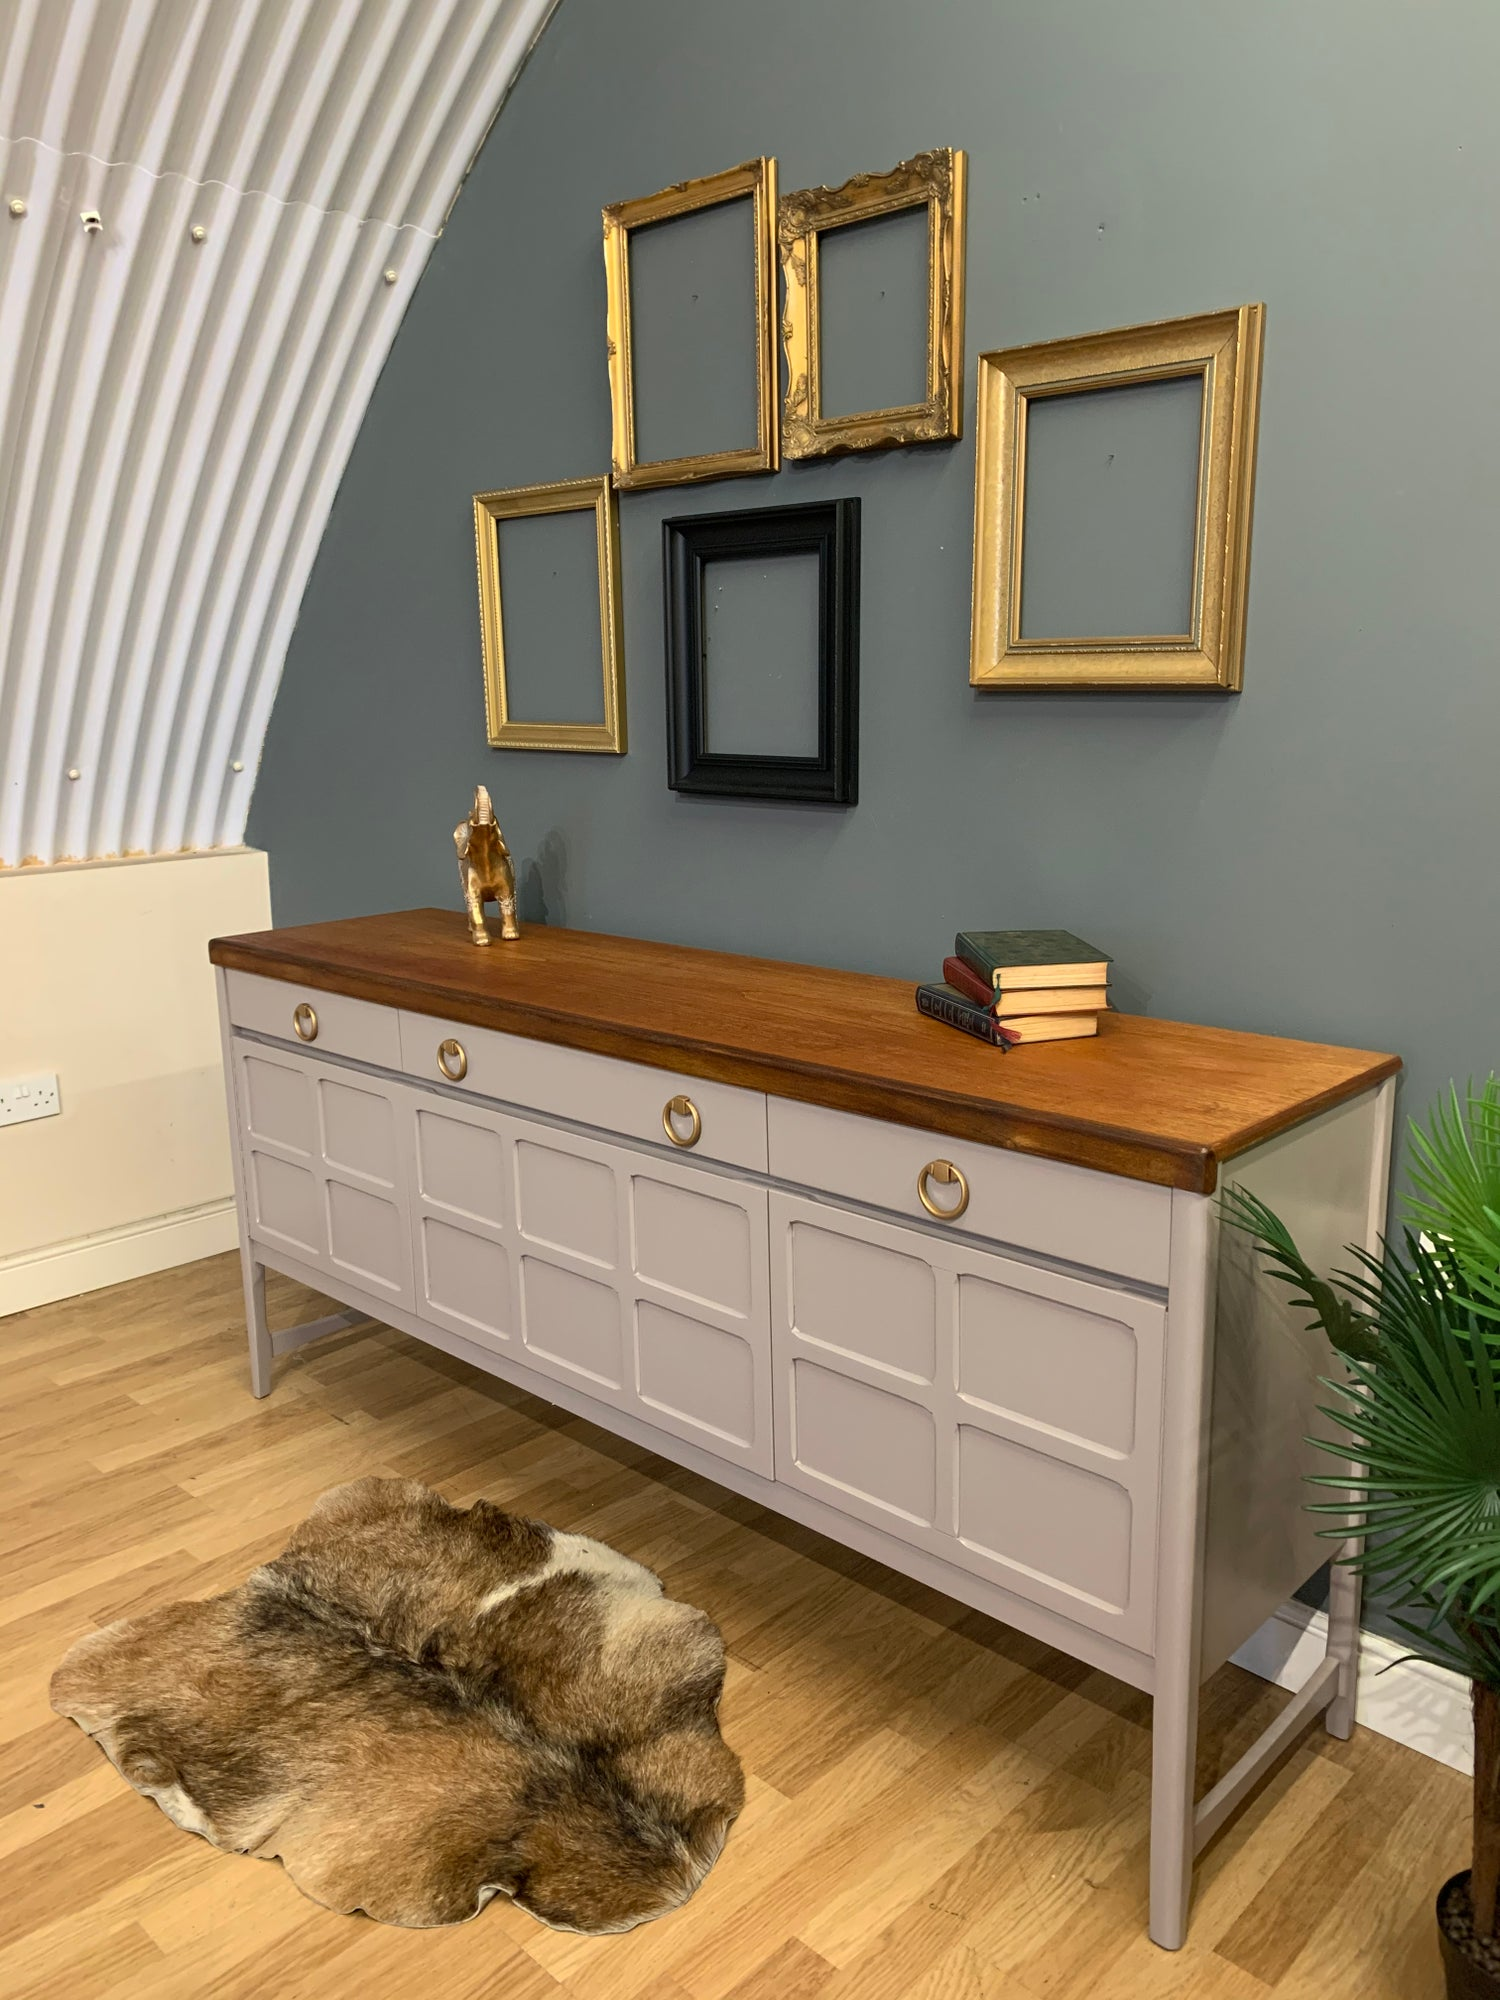 Image of Nathan teak sideboard in neutral.